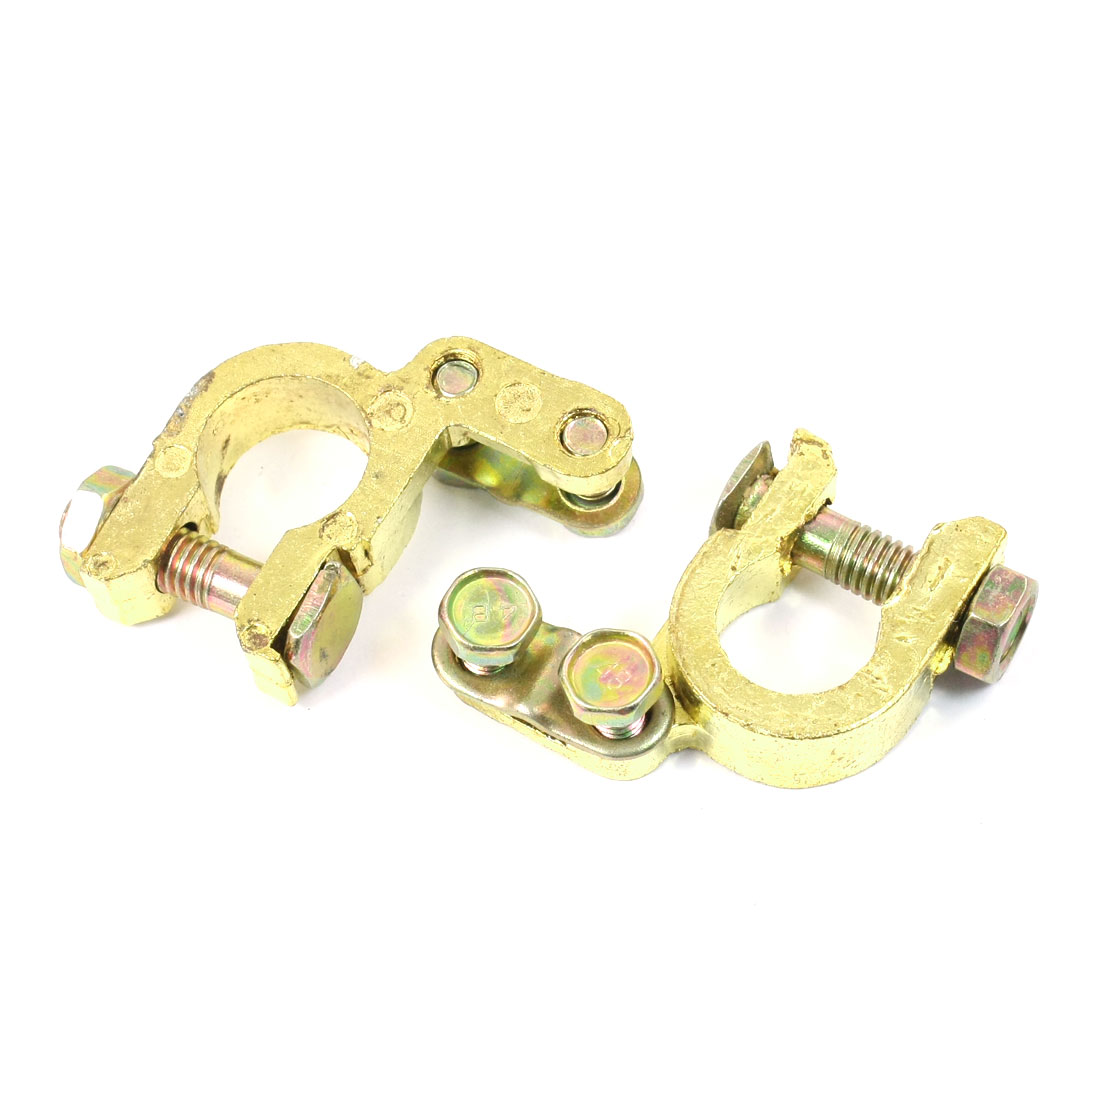 Car Gold Tone Brass Adjustable Battery Terminal Clips Clamps 2 PCS